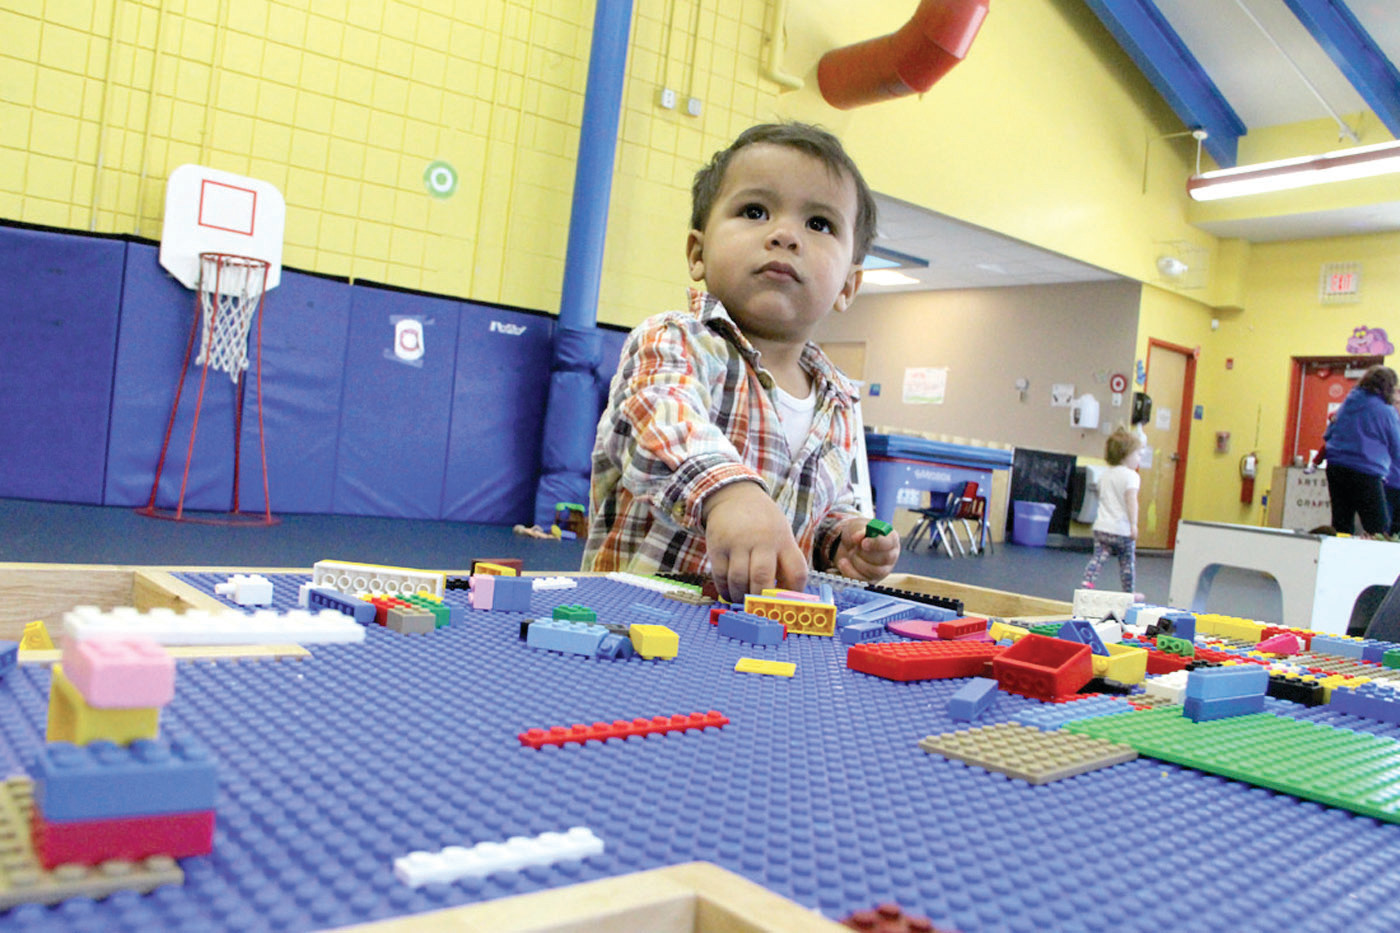 NEVER TOO YOUNG FOR LEGOS: Robert Kilgore, 18 months old of Warwick, can't resist playing at the Lego table.